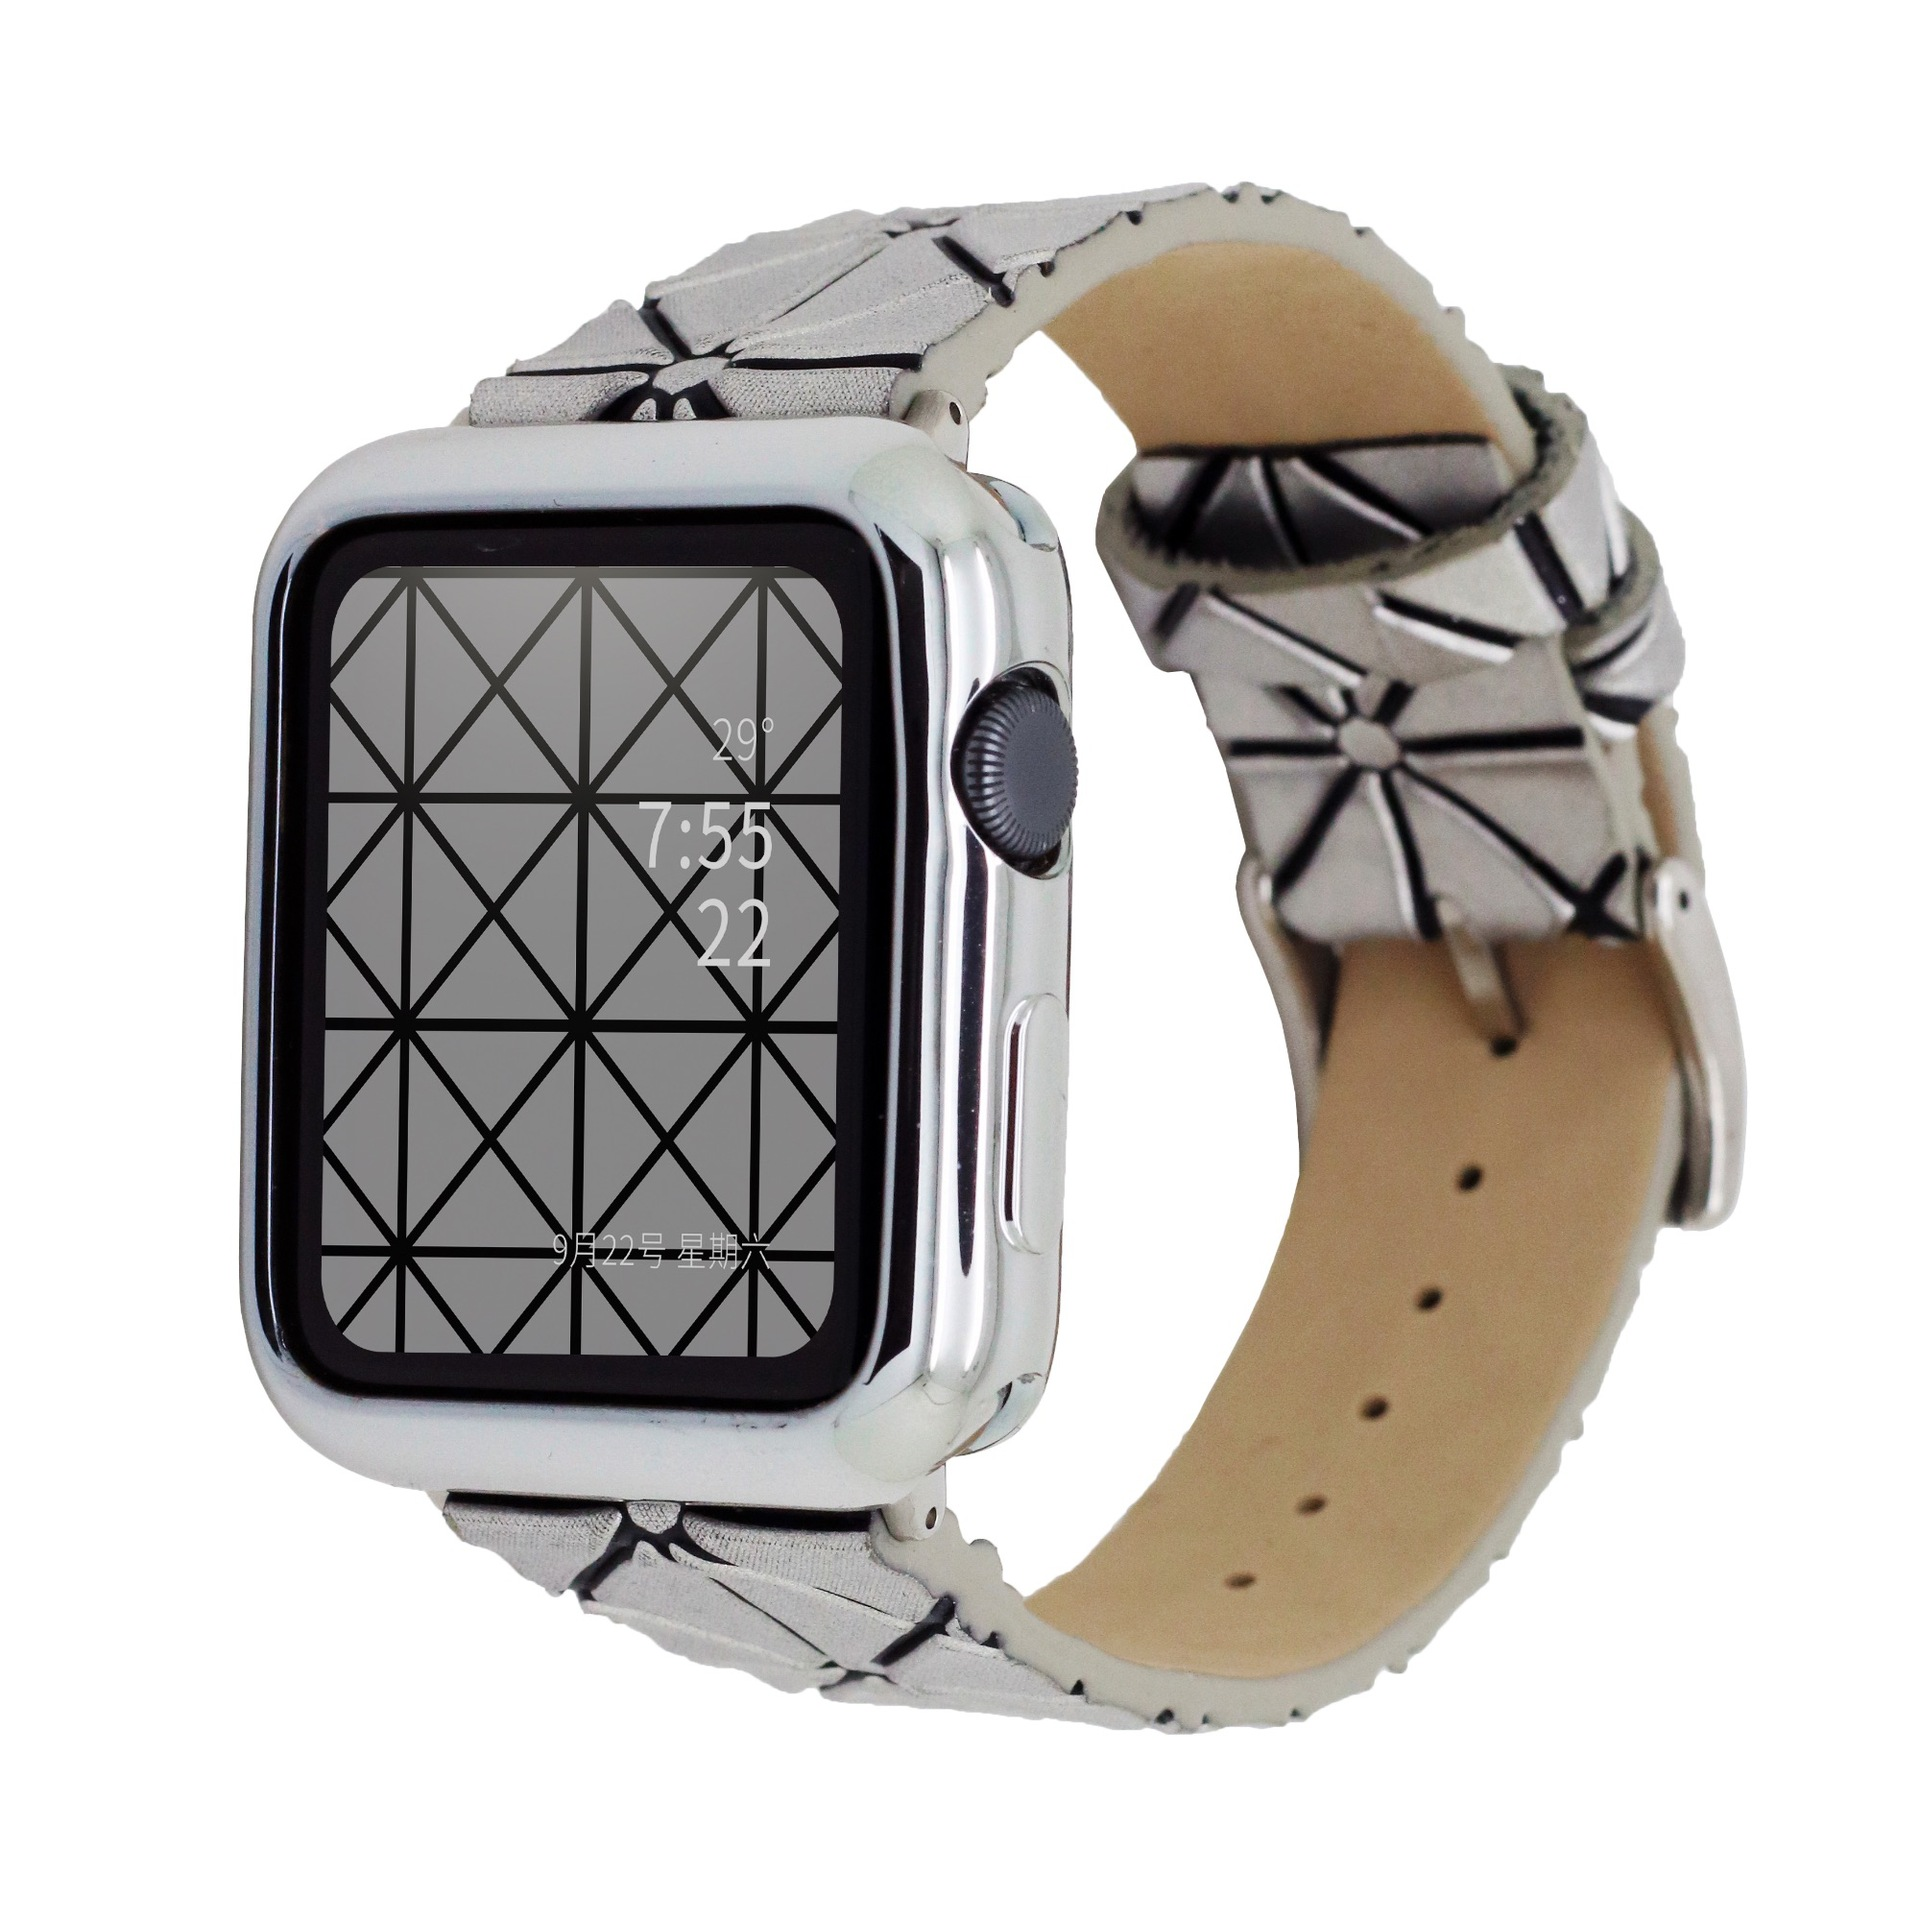 Issey Miyake Geometry Rhombus Watch Band For Apple AppleWatch Laser Grid Watch Strap Iwatch34